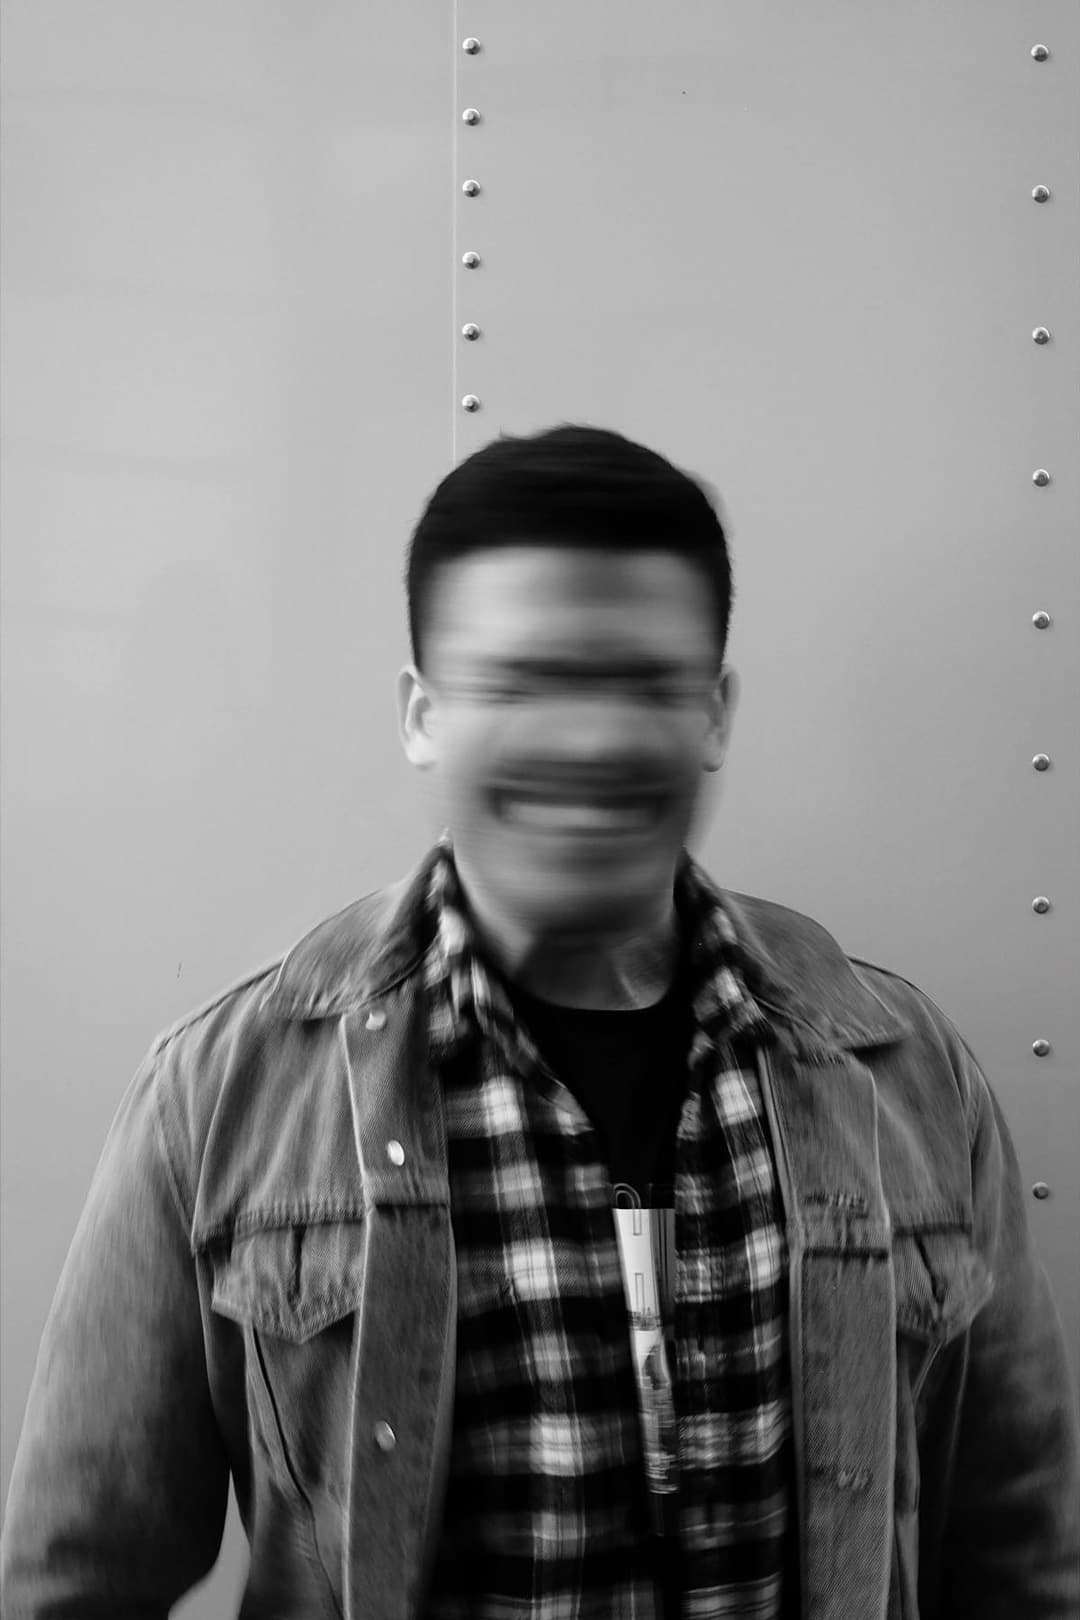 joe balzac in front of a truck shaking his head, photographed at a low shutter speed to show blur